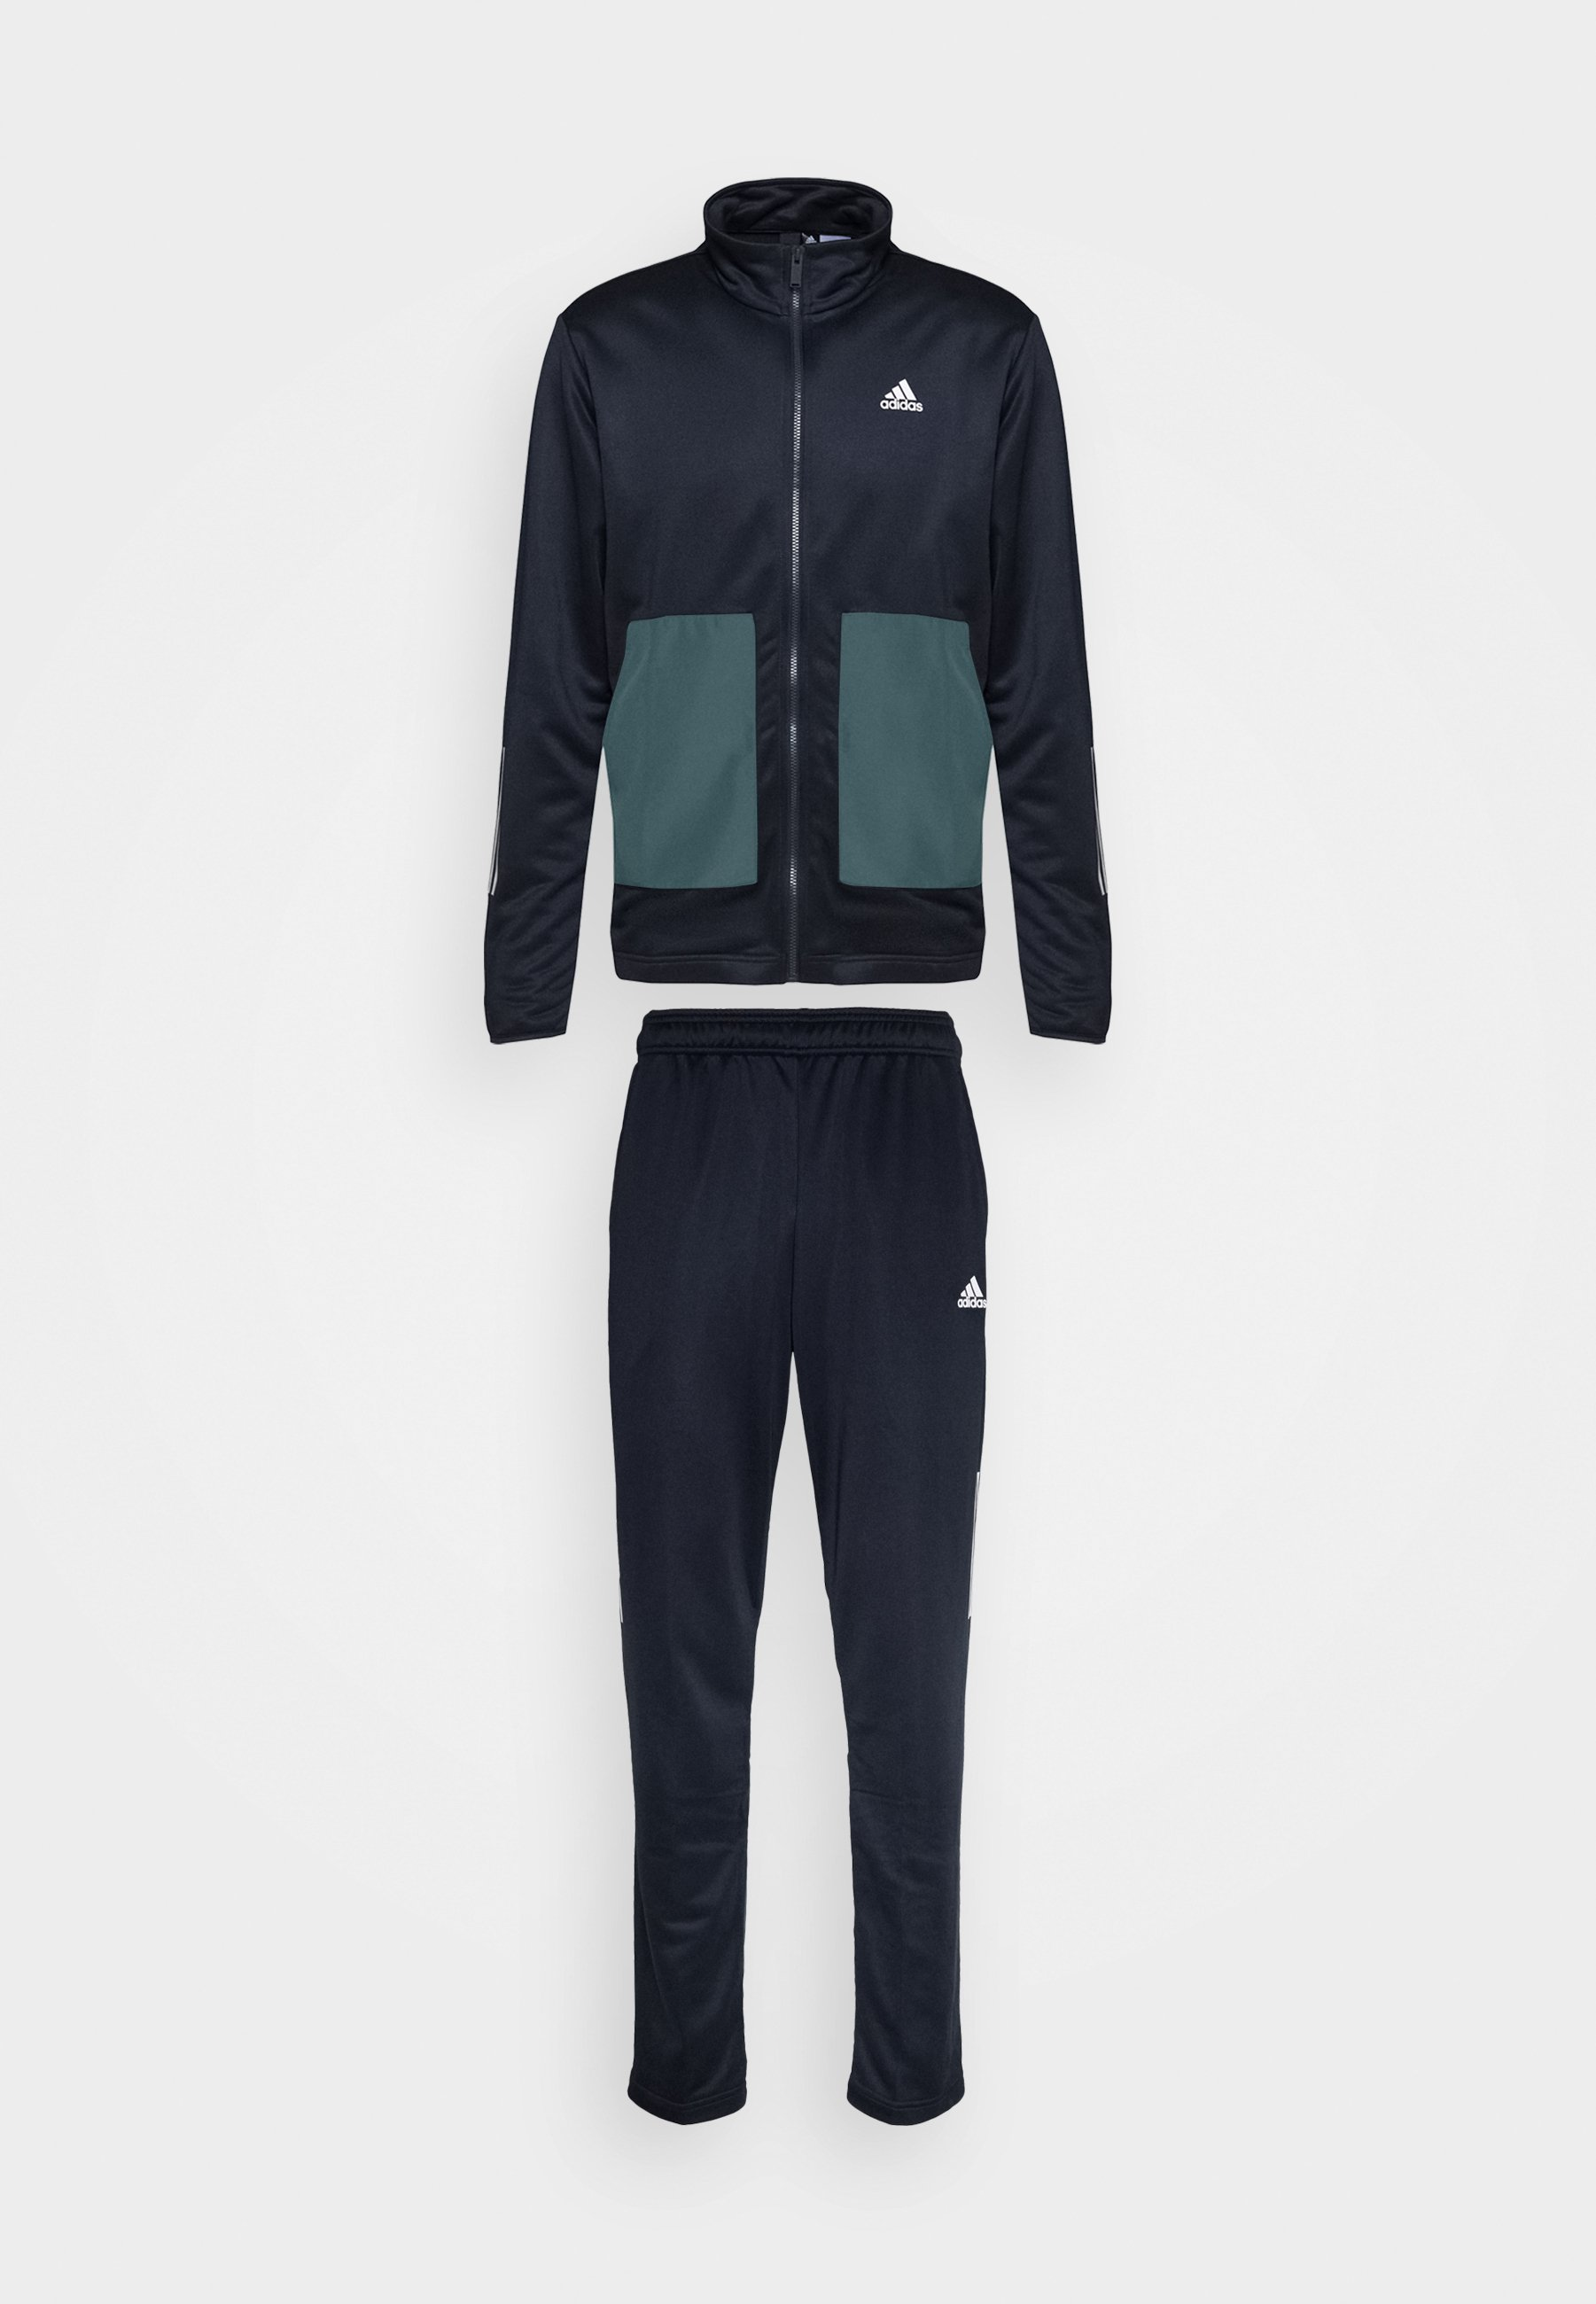 Adidas Performance Fabric Mix Aeroready Sports Tracksuit - Treningsdress Dark Blue/mørkeblå